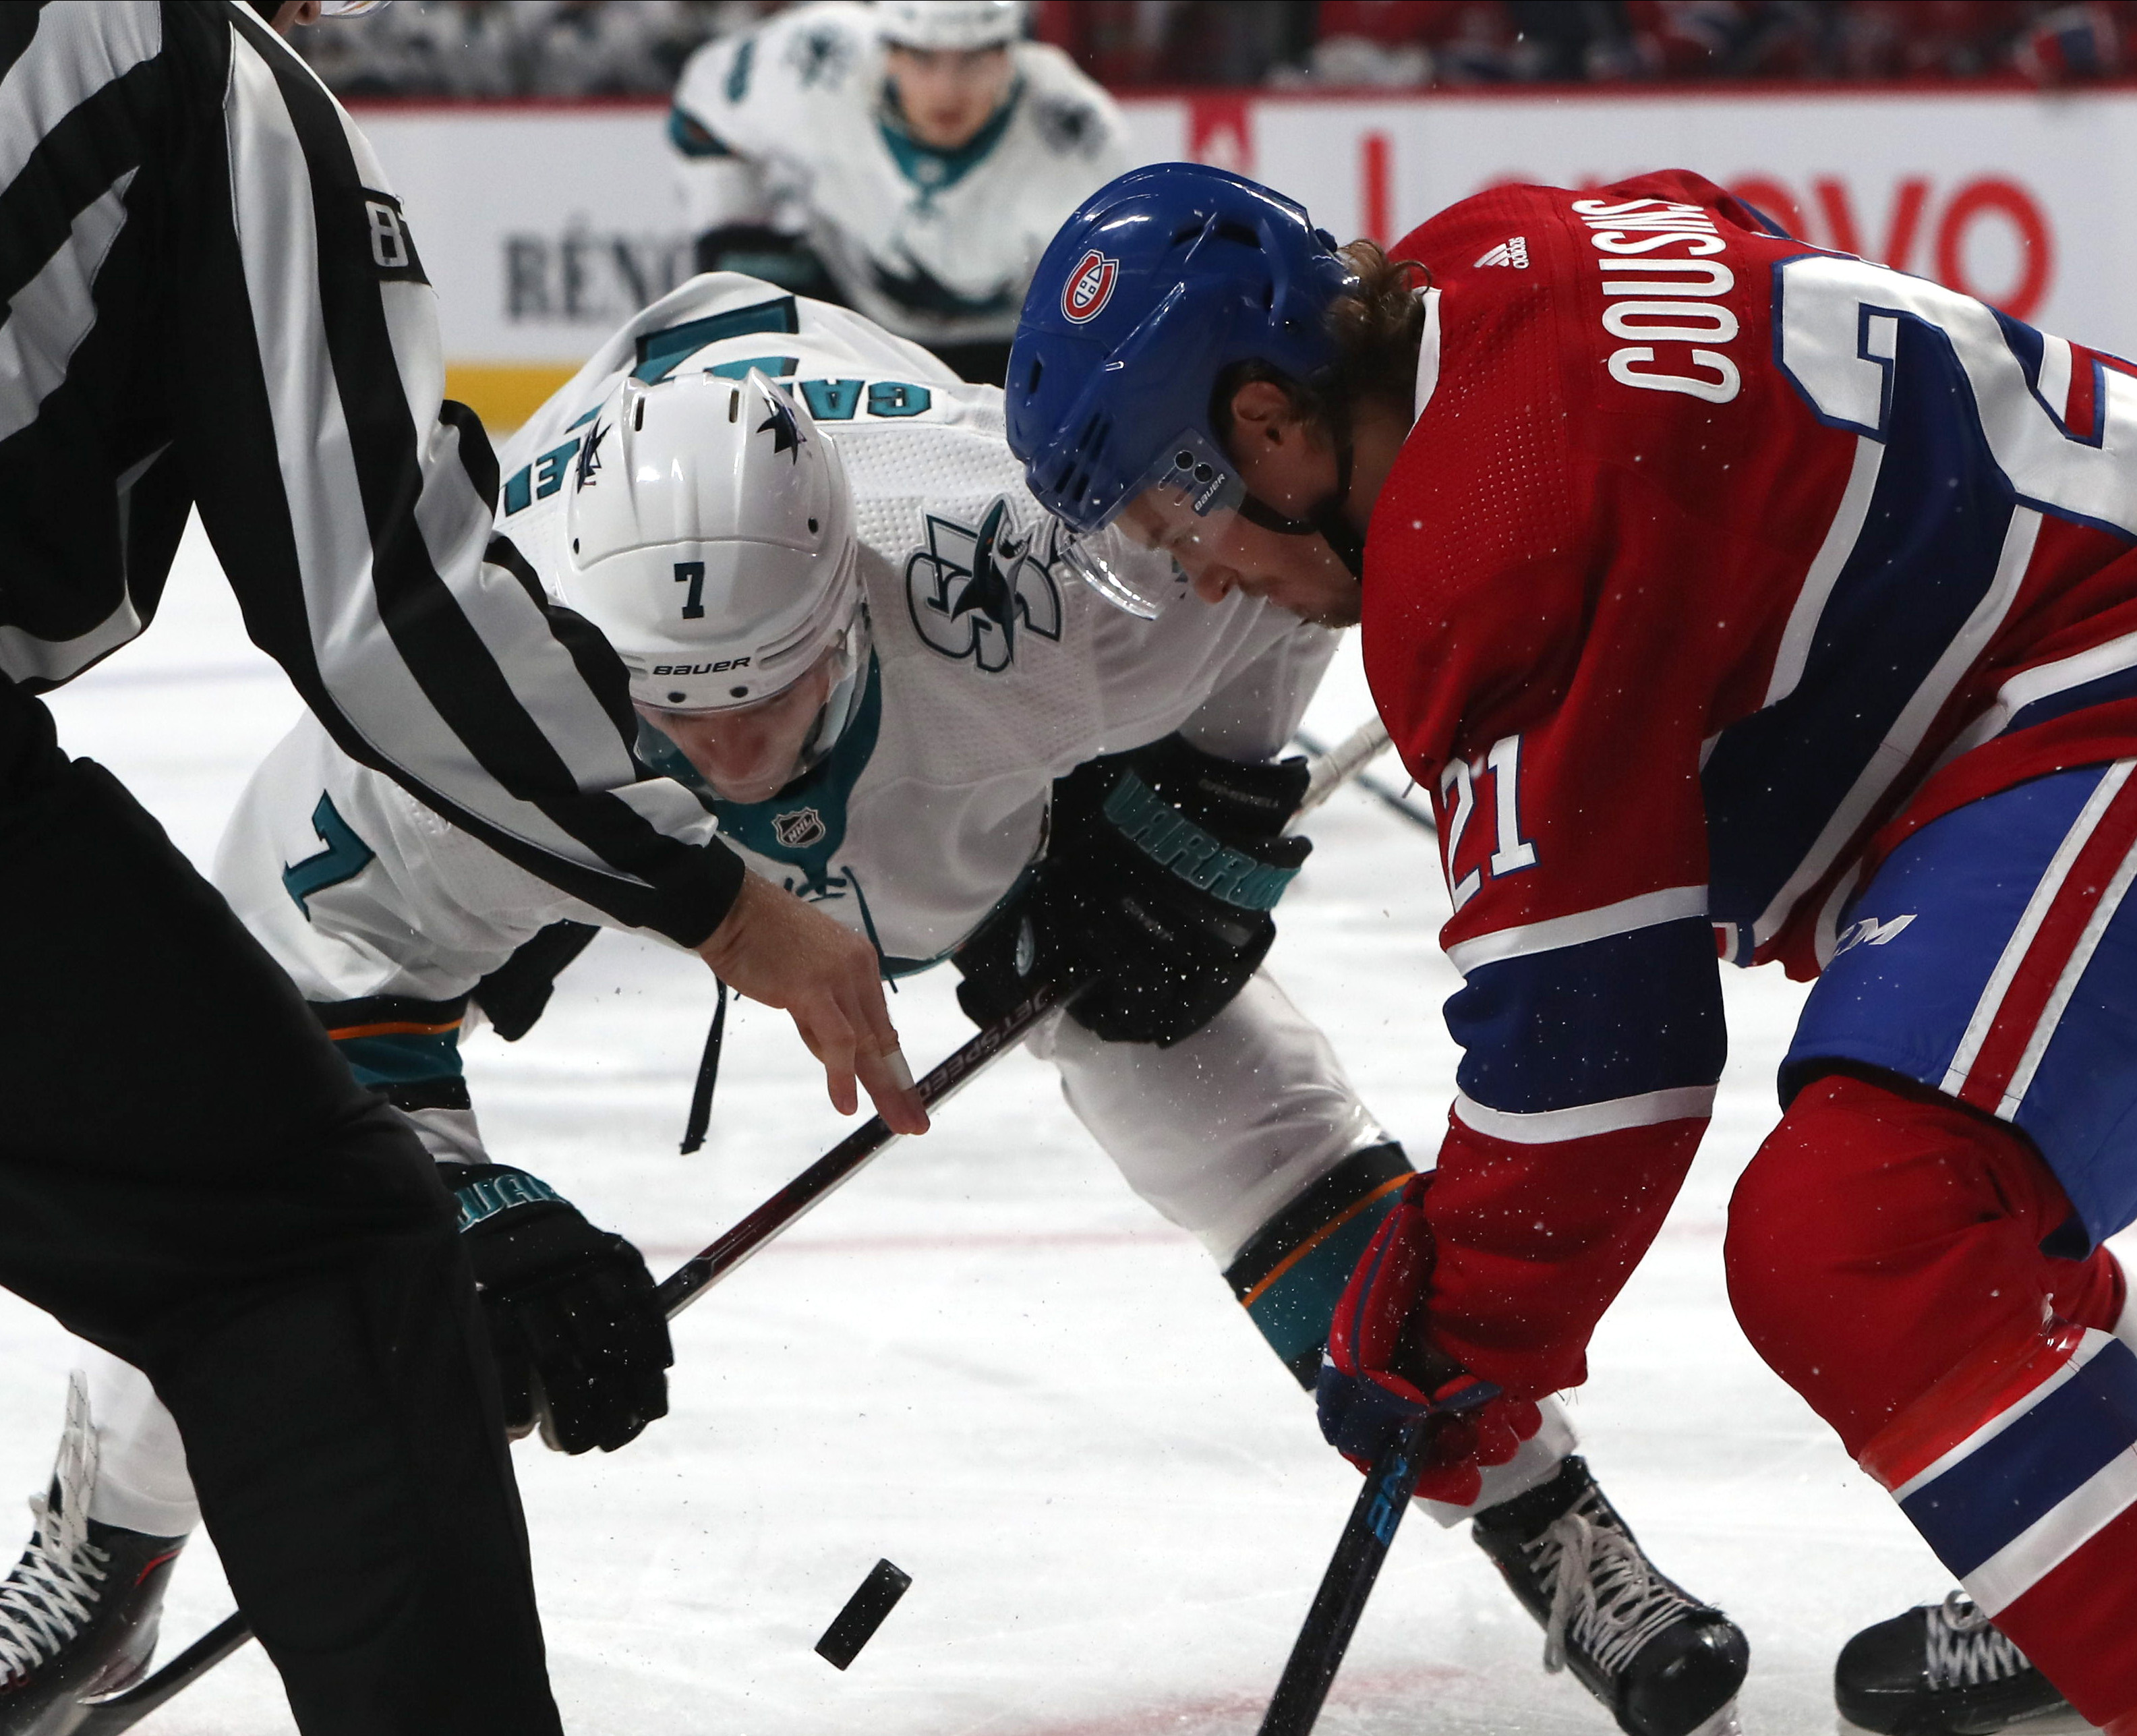 Oct 24, 2019; Montreal, Quebec, CAN; San Jose Sharks center Dylan Gambrell (7) and Montreal Canadiens center Nick Cousins (21) during a first period face-off at Bell Centre. Mandatory Credit: Jean-Yves Ahern-USA TODAY Sports